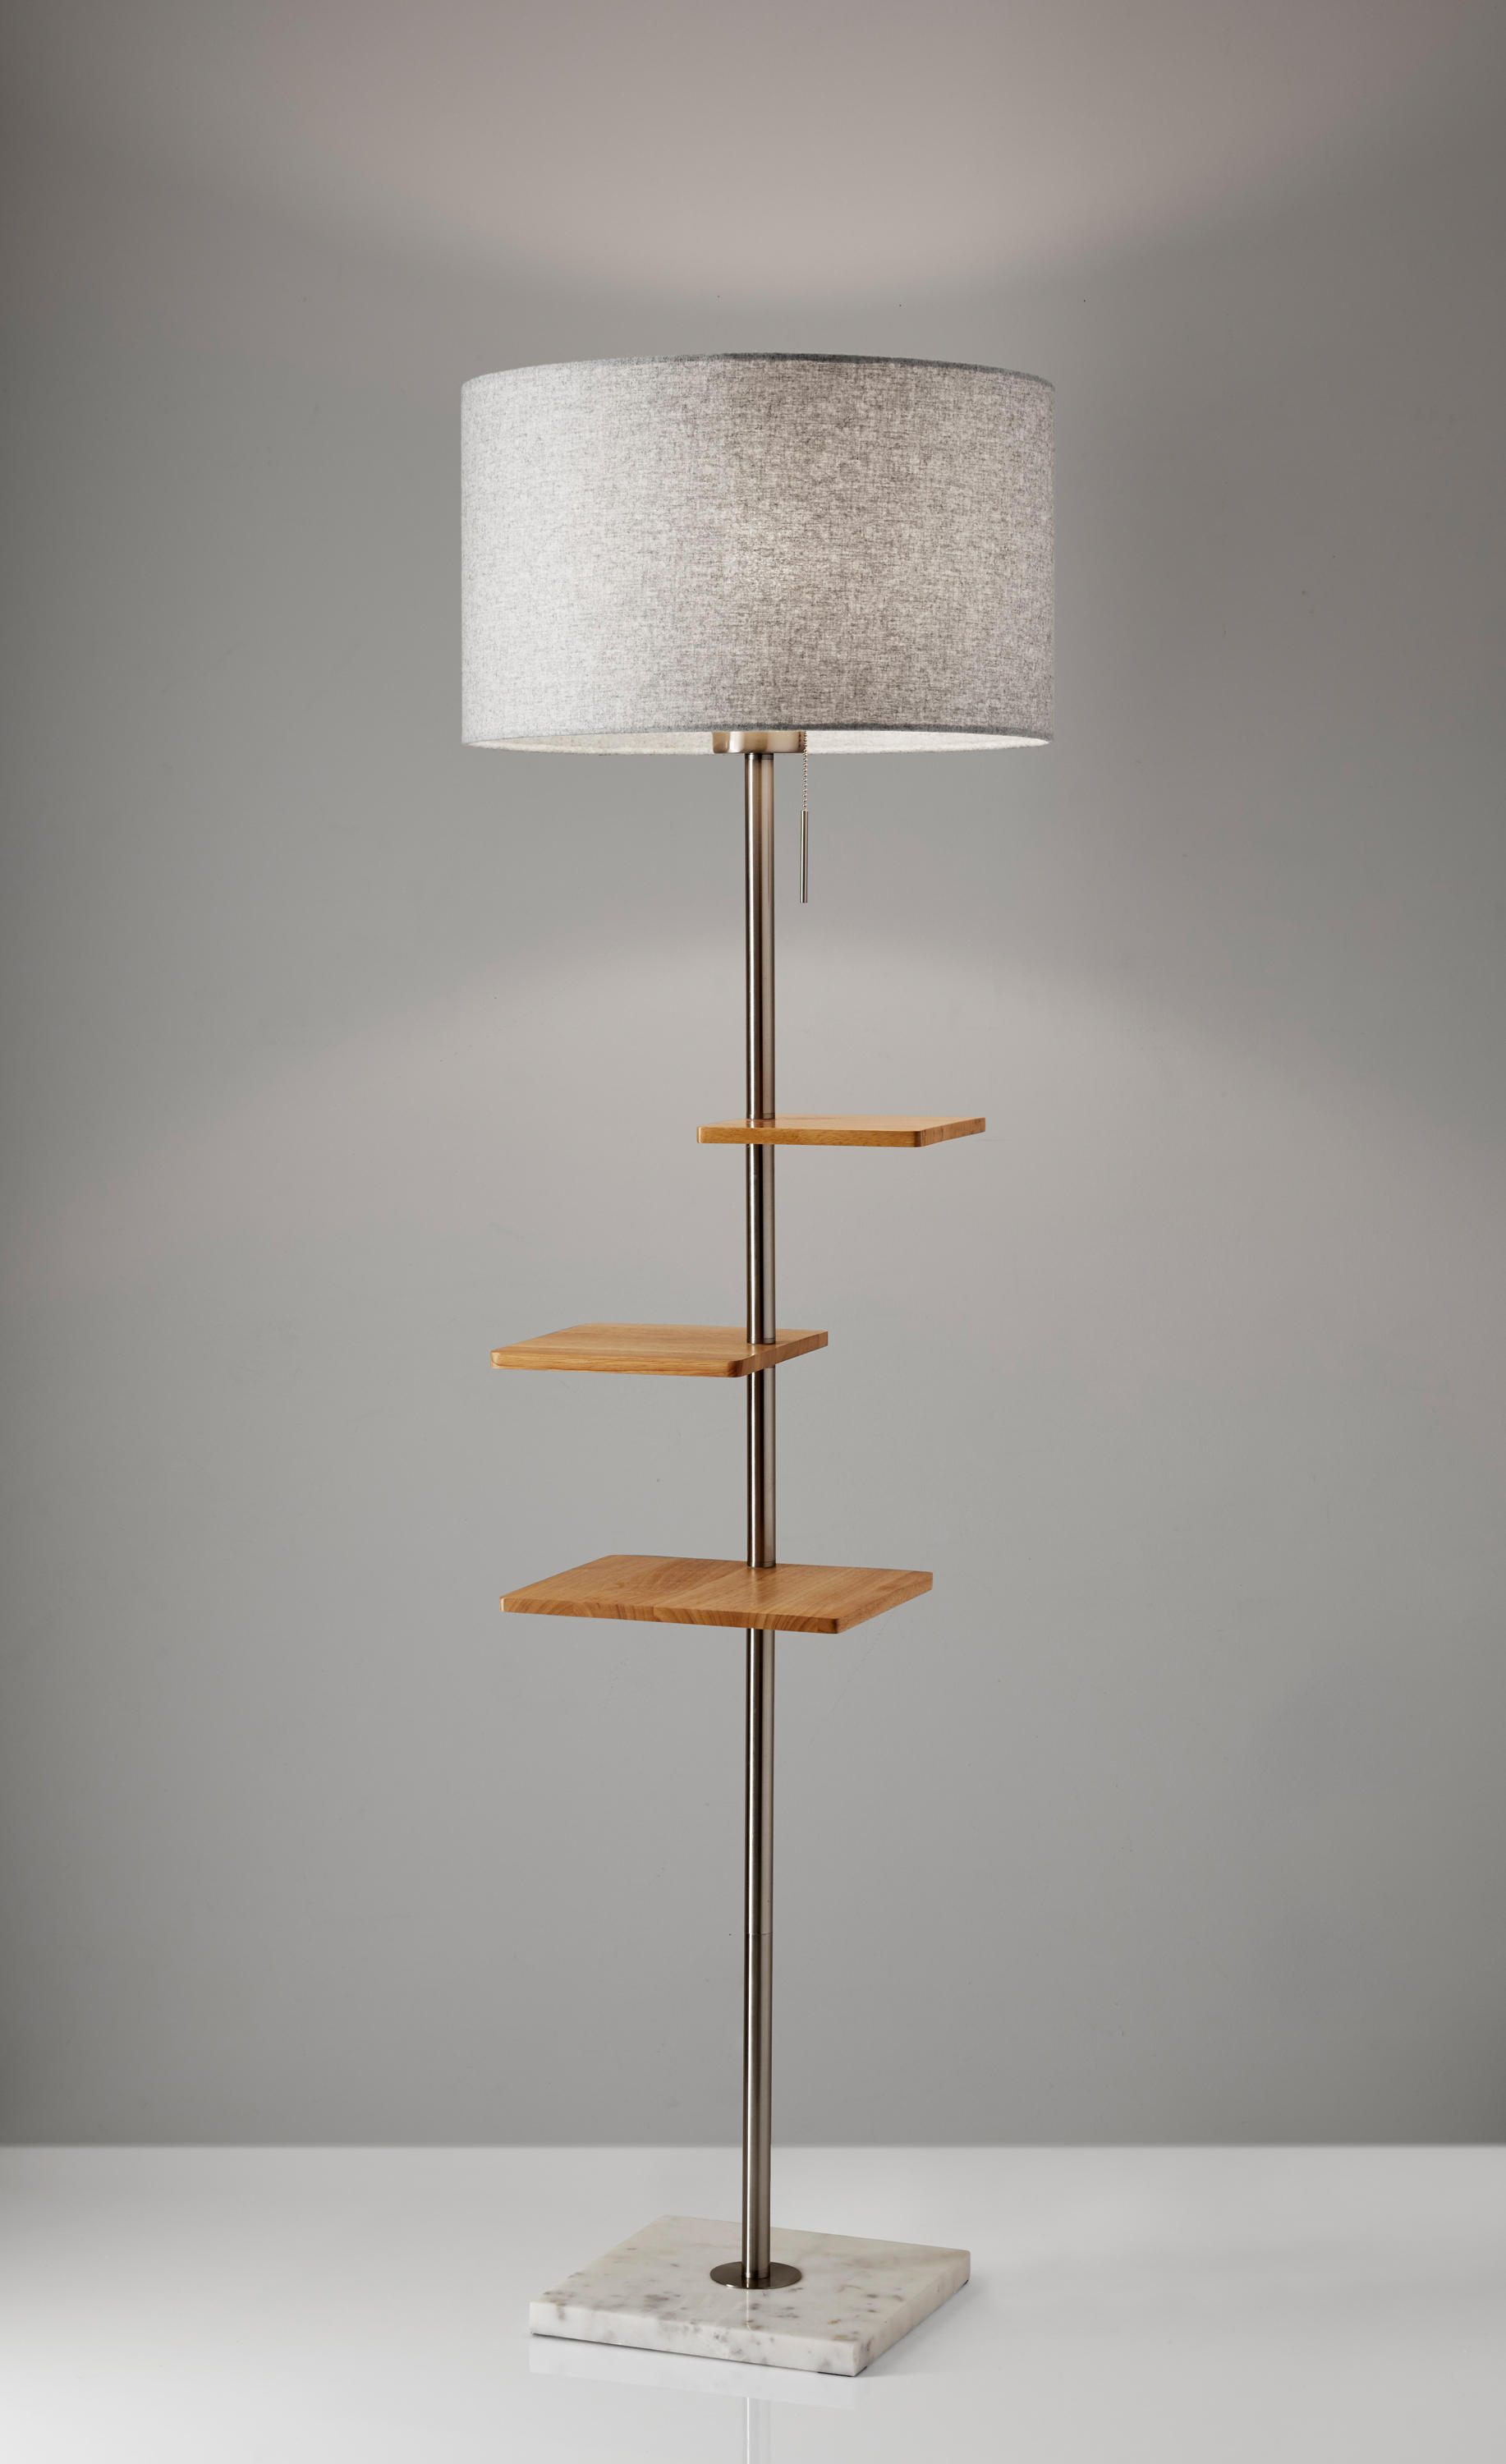 the steel shelf glass stainless shelves lamp in home adesso lamps with p floor